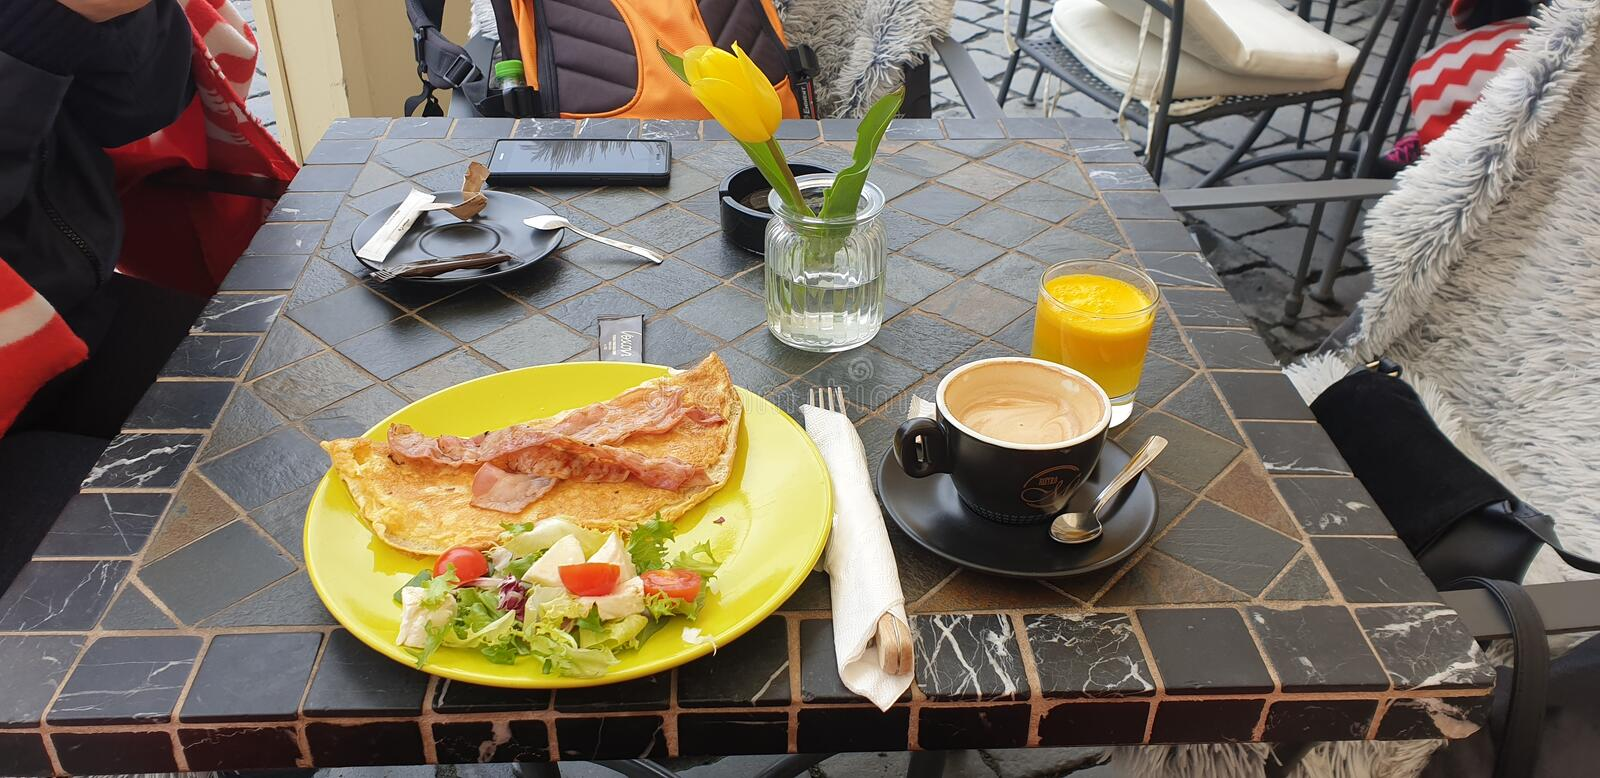 Breakfast in Timisoara Romania union square with coffee and omellete and orange juice and salad royalty free stock photography